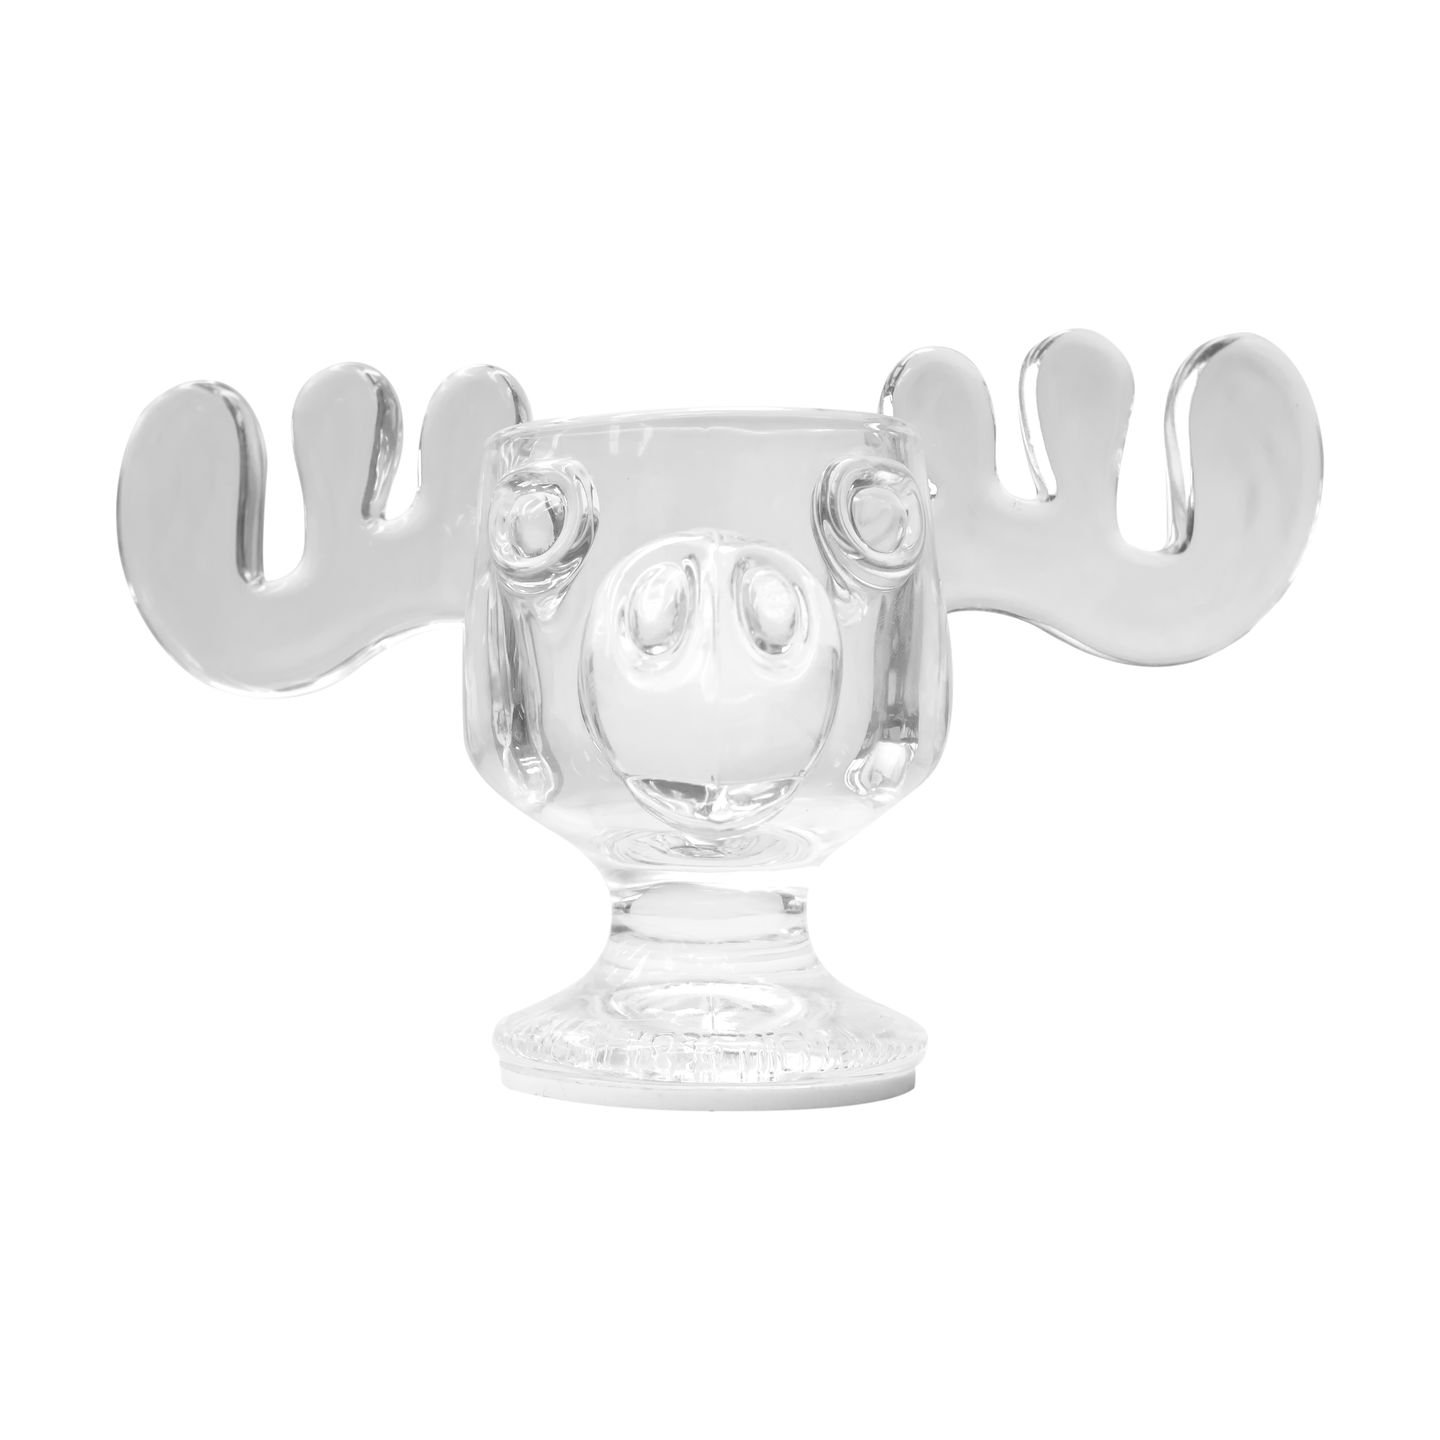 National Lampoons Christmas Vacation Glass Moose Mug with Light (1-Pack) MooseMug001-1Pack